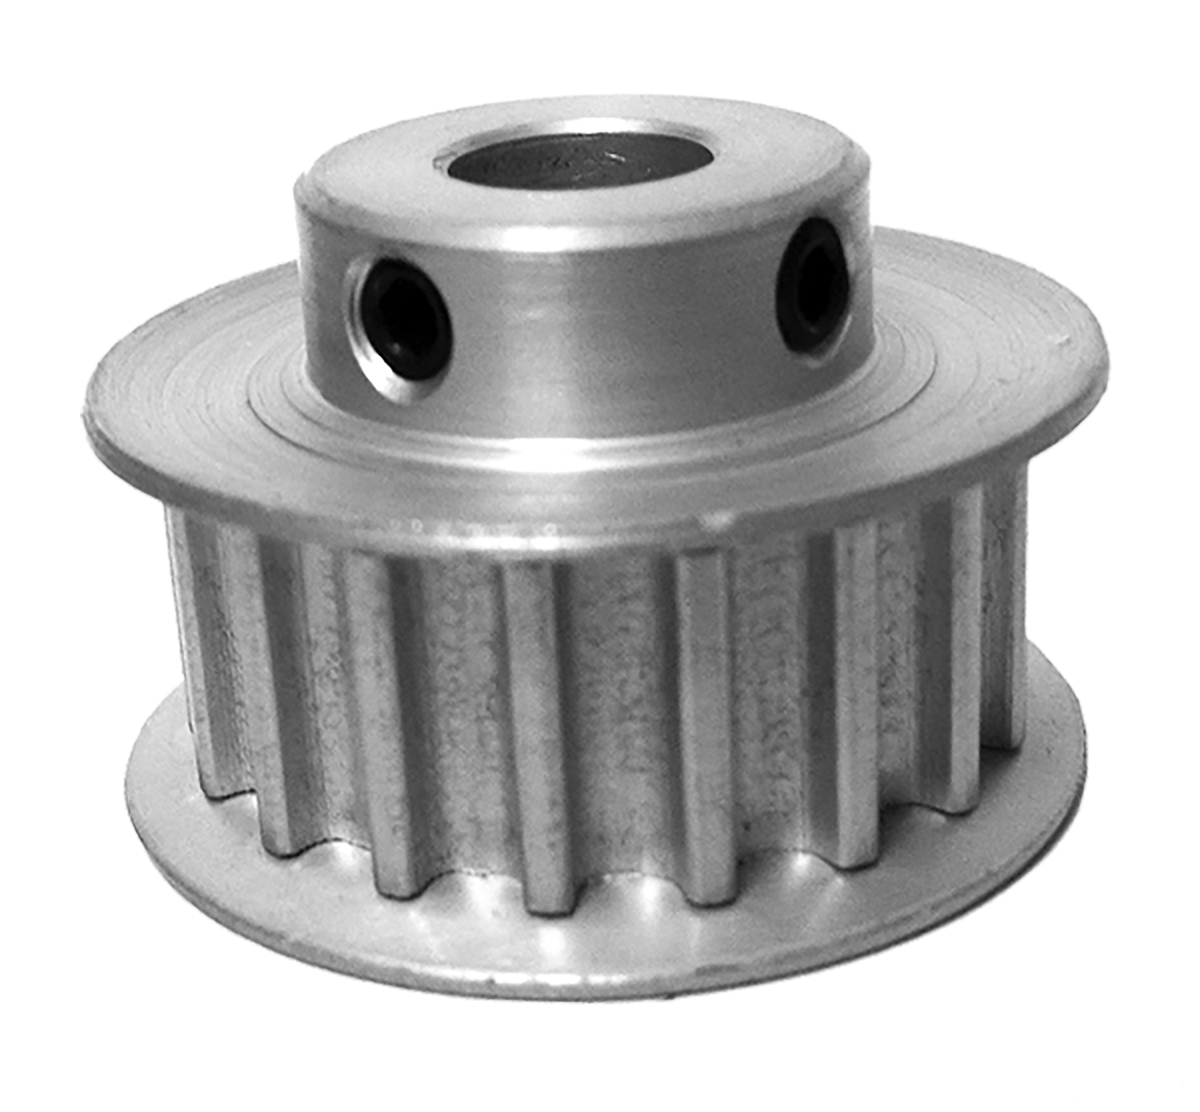 16-5M09-6FA4 - Aluminum Powerhouse®HTD® Pulleys